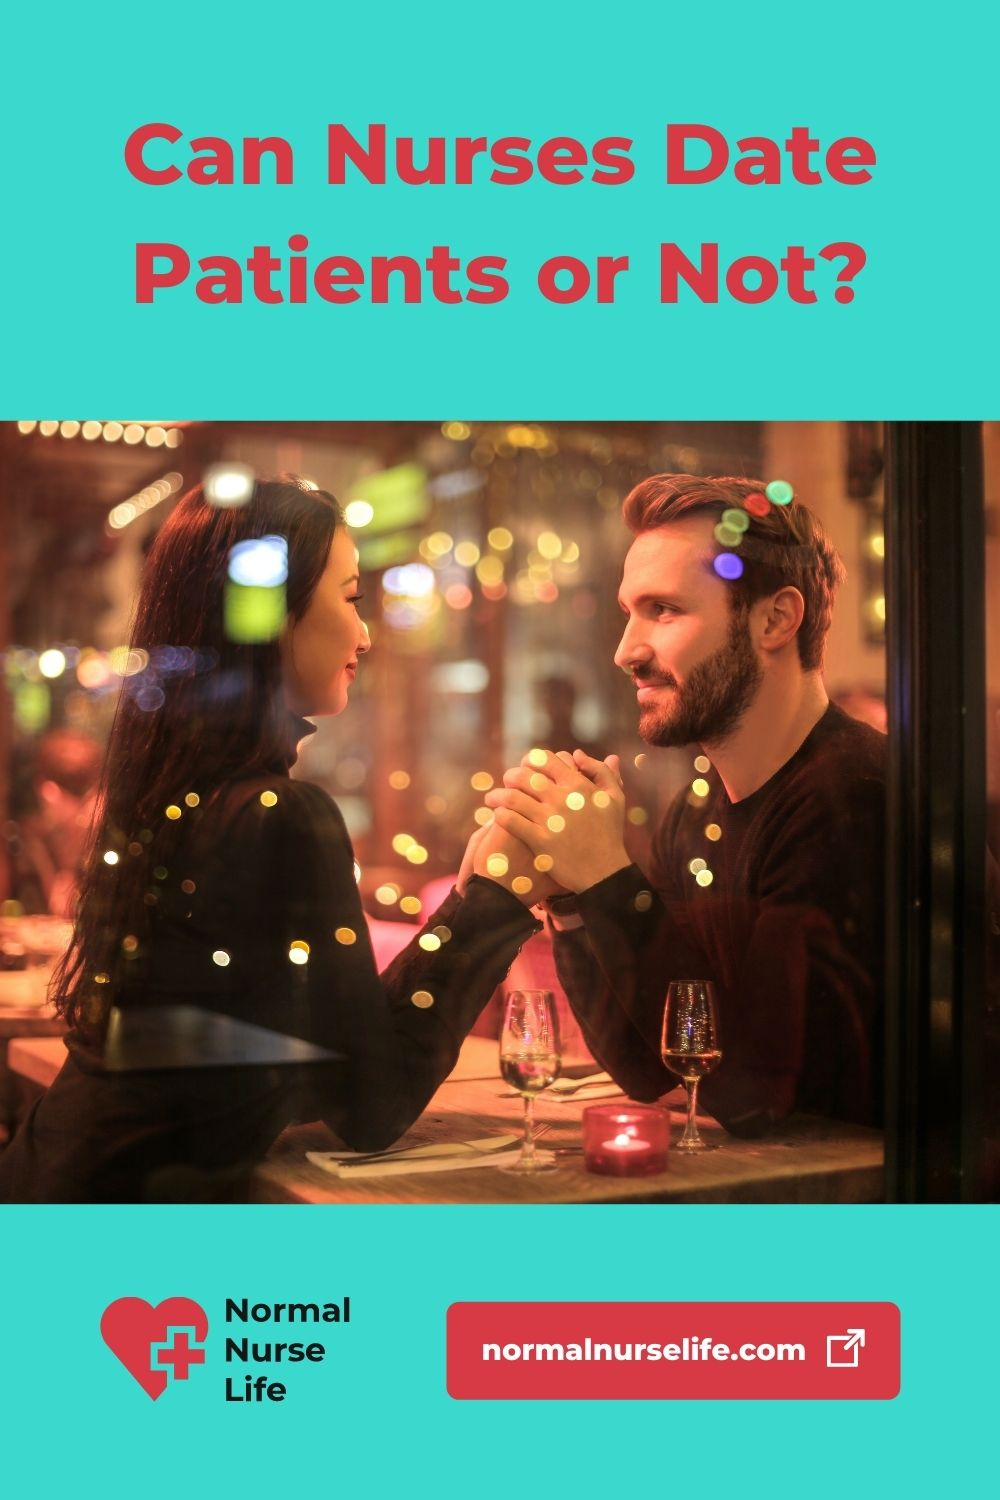 Can nurses date patients or not